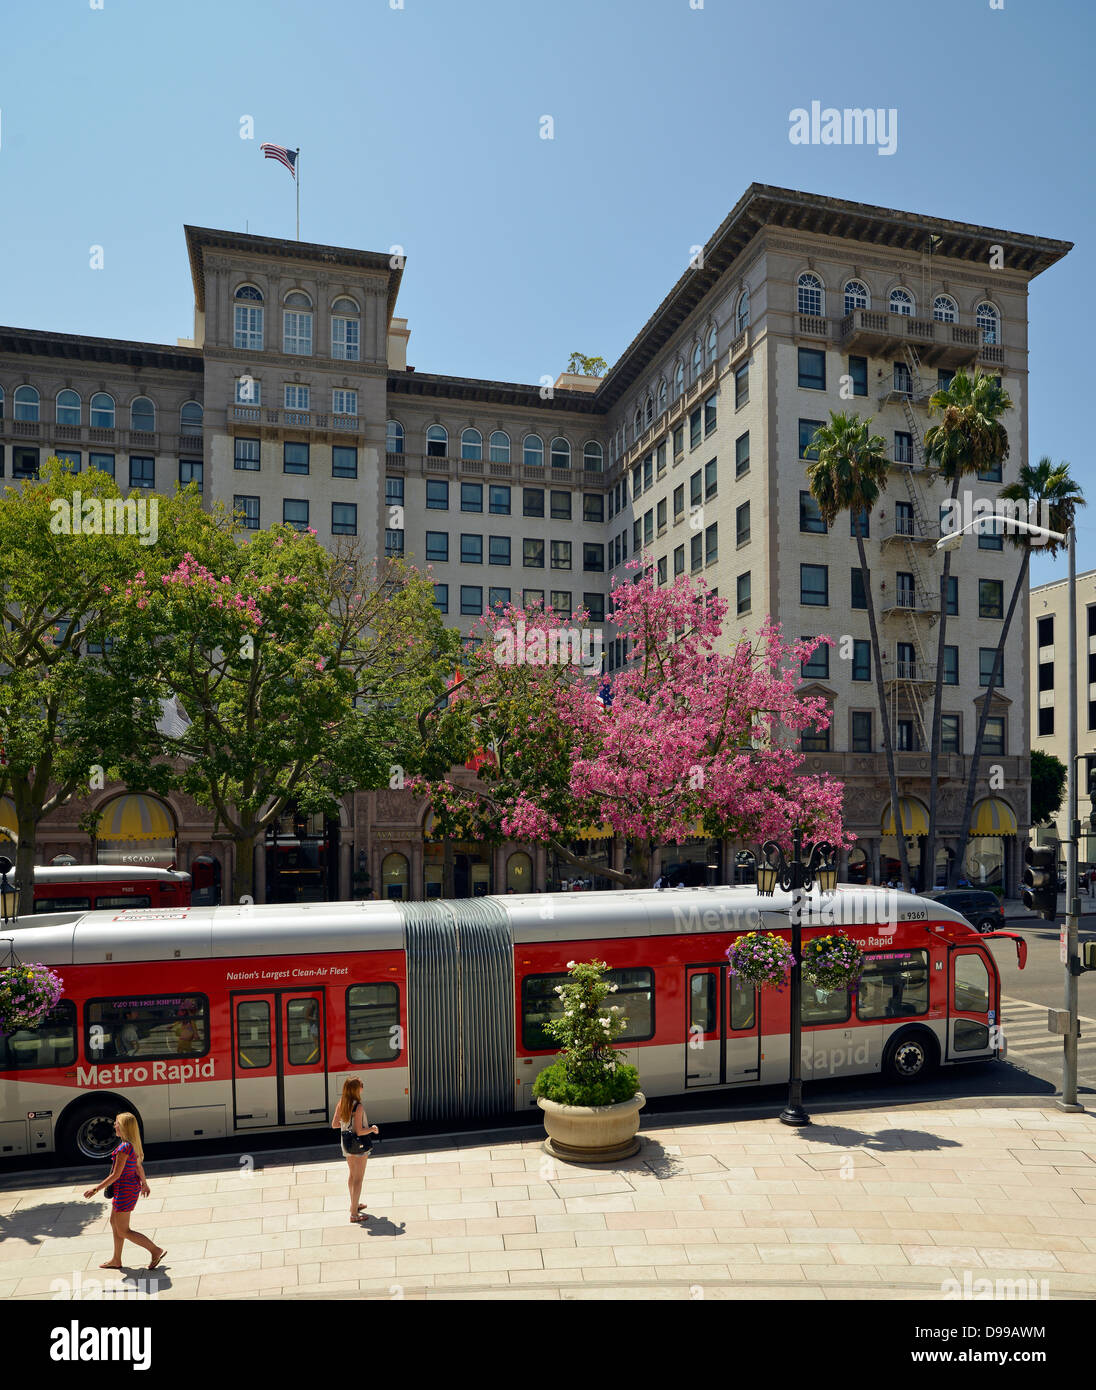 Beverly Wilshire Four Season's hotel, known from Pretty Woman, Wilshire boulevard, Beverly Hills, Los Angeles, - Stock Image